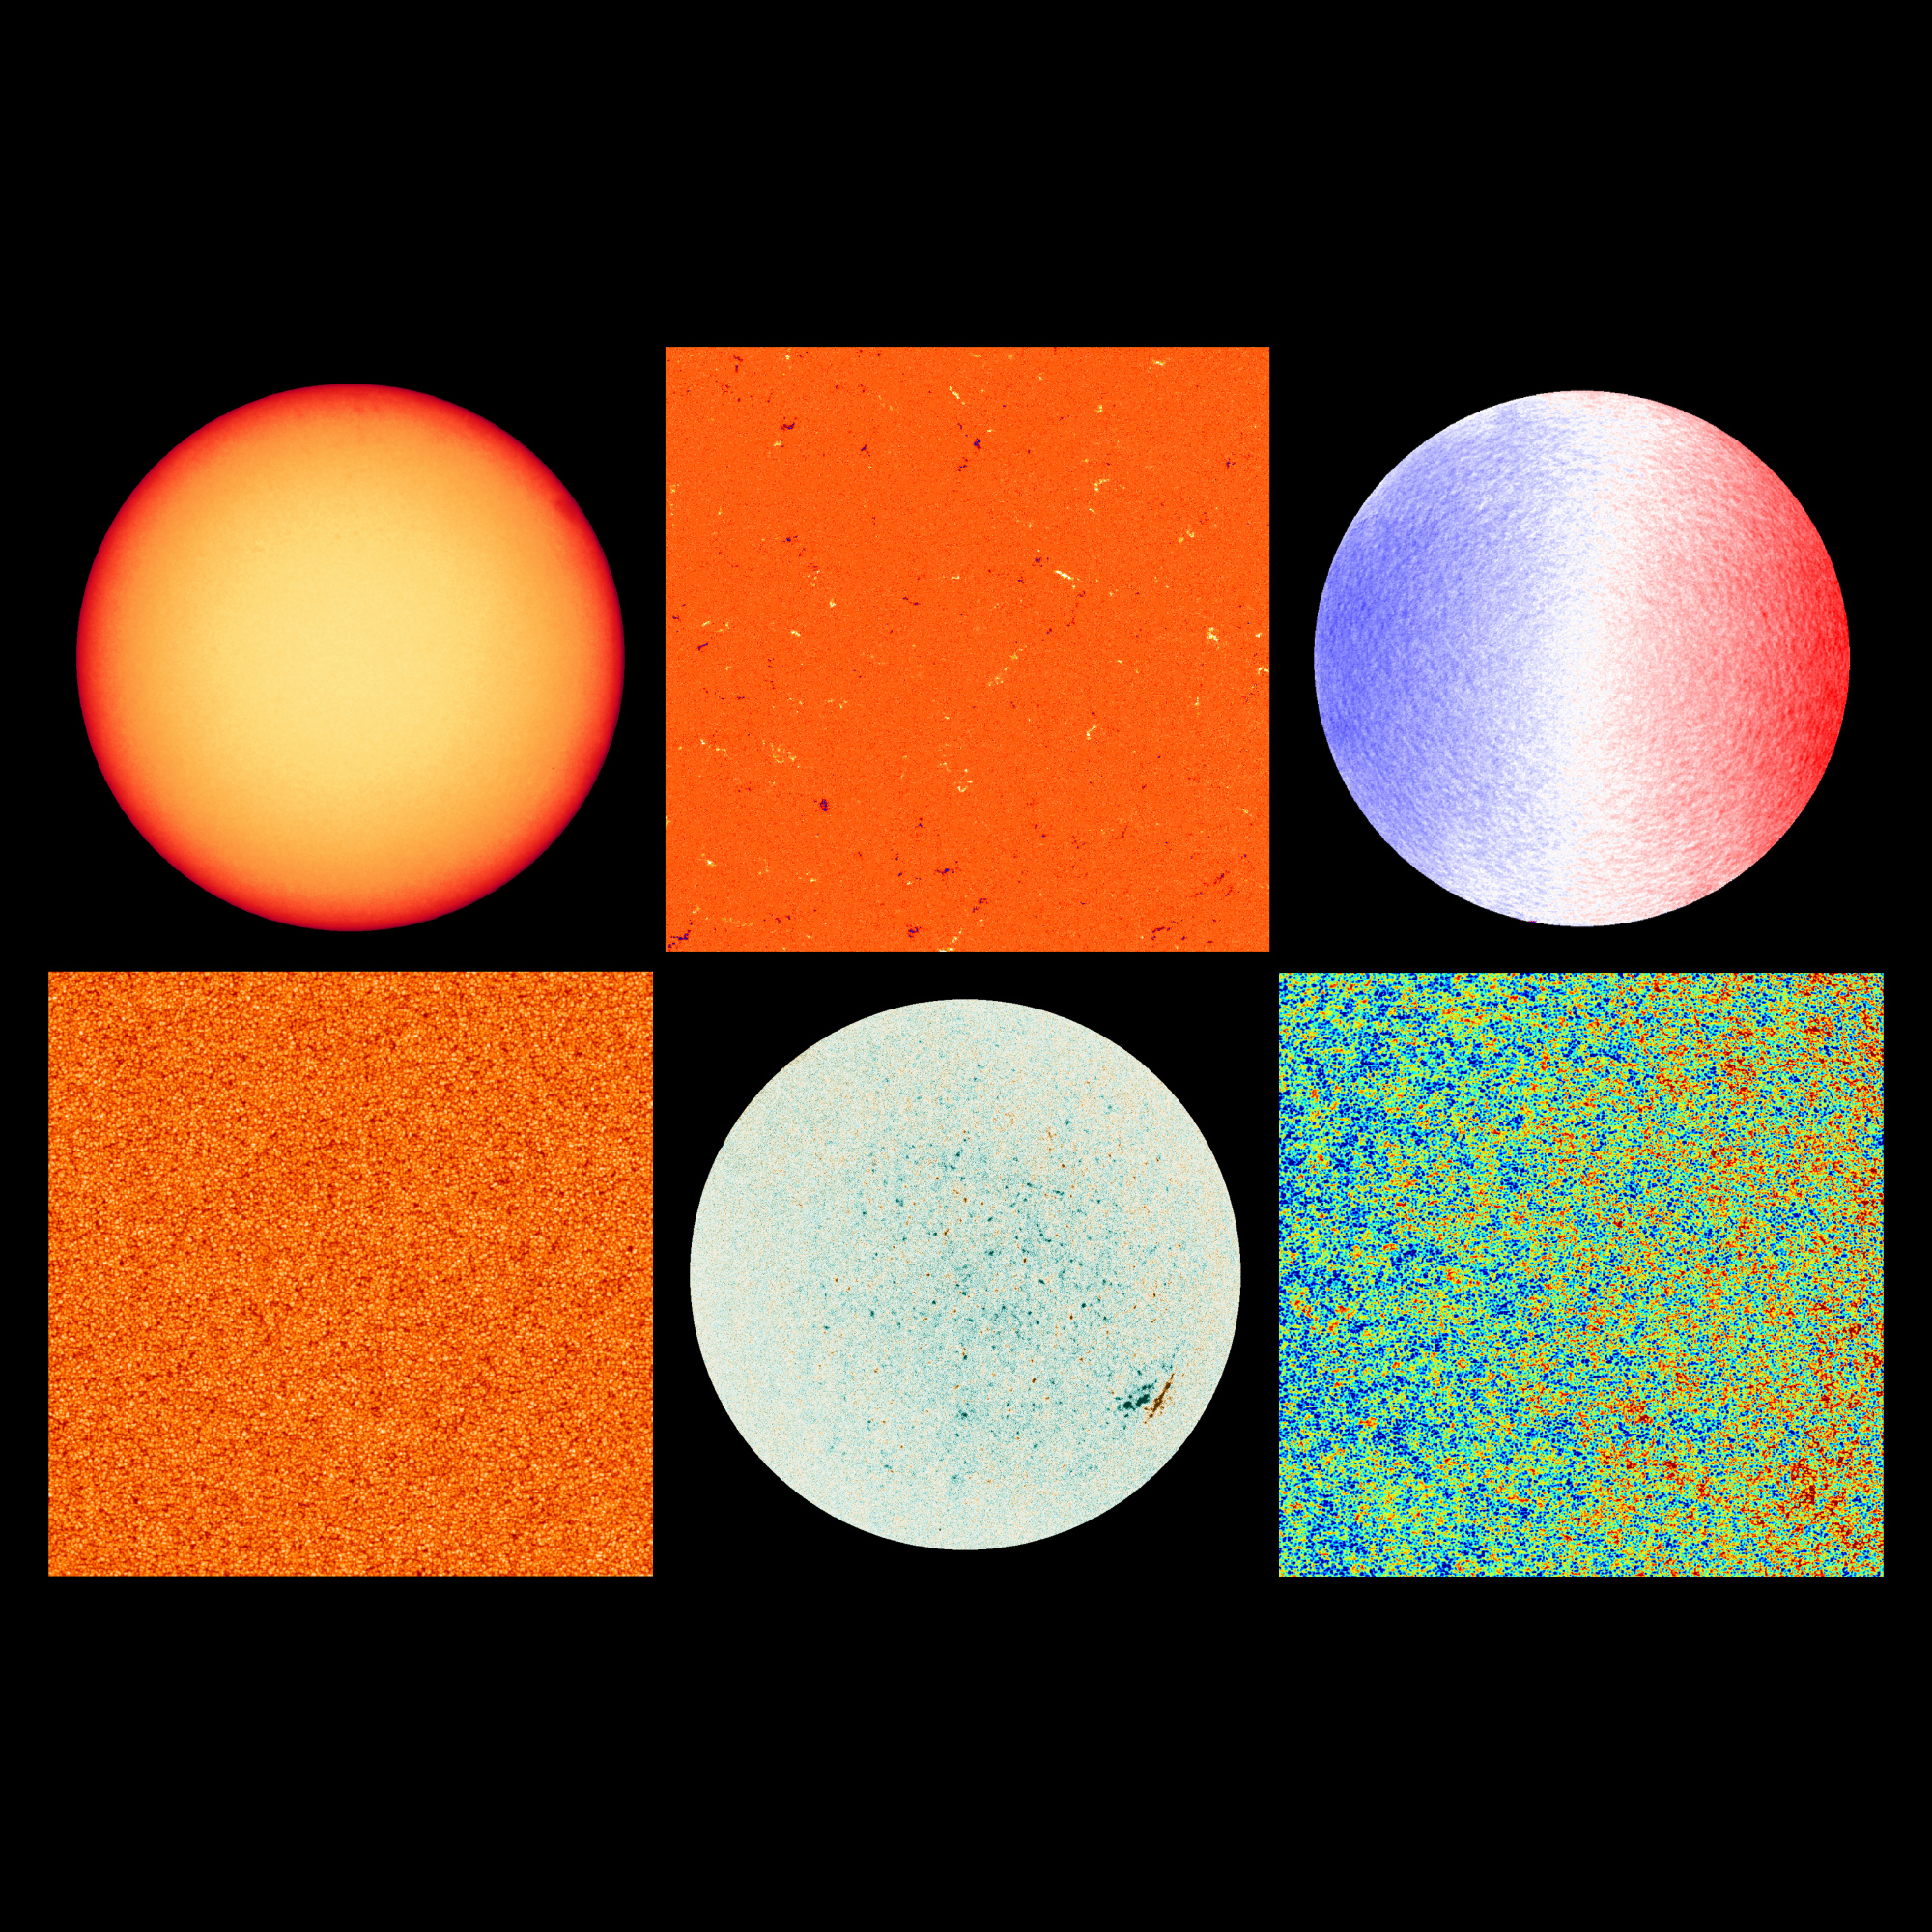 Sunlight_magnetic_fields_and_movement_revealed_by_the_PHI_instrument_on_Solar_Orbiter_(1).jpg